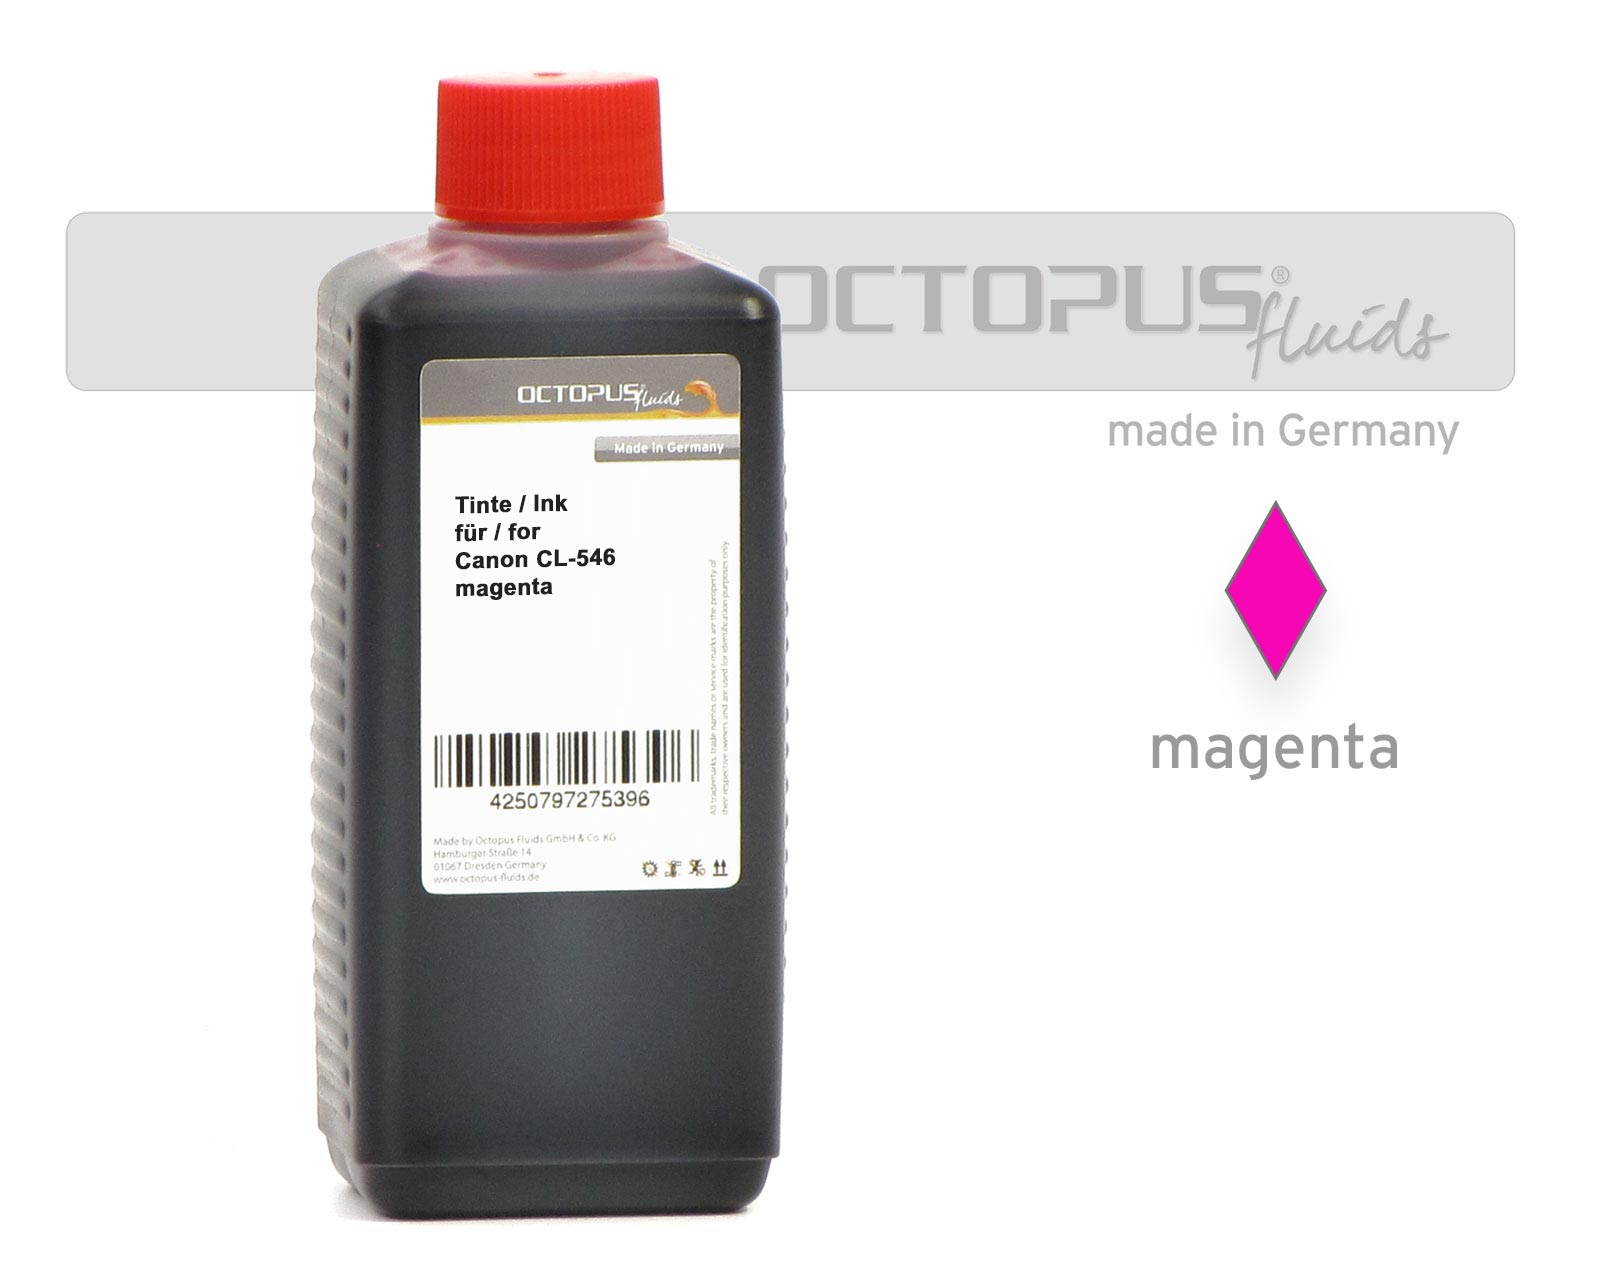 Octopus ink for Canon CL-546 color cartridges magenta